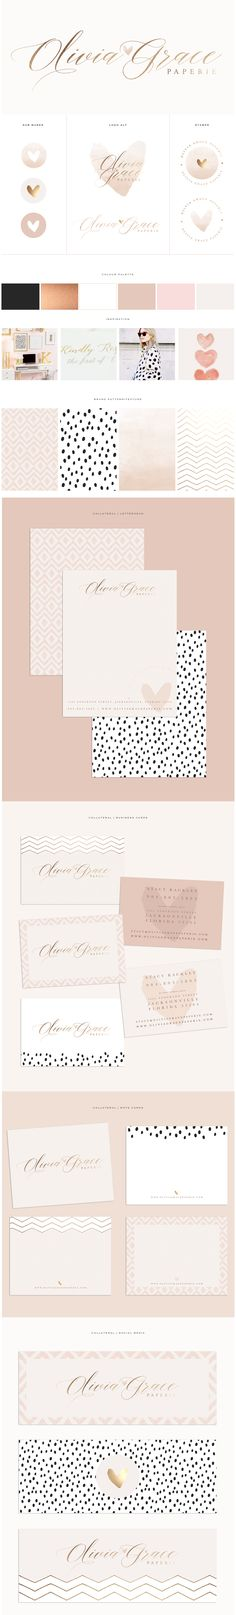 Brand Design for Olivia Grace Paperie by Brand Me Beautiful | www.brandmebeautiful.co.uk